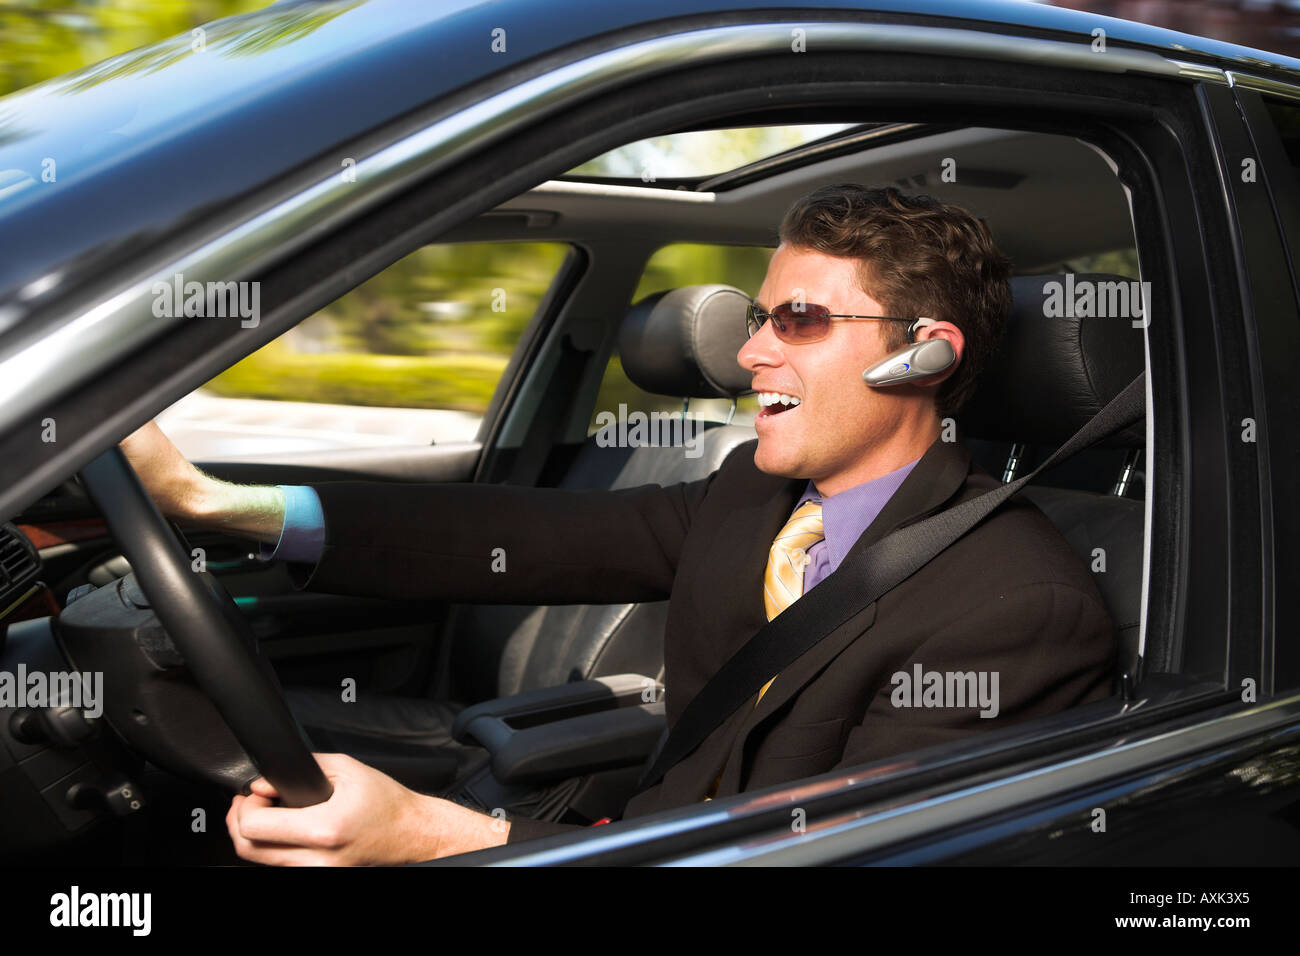 business man person drive fast on phone hands on wheel safety movement go transport travel black yellow purble blue - Stock Image